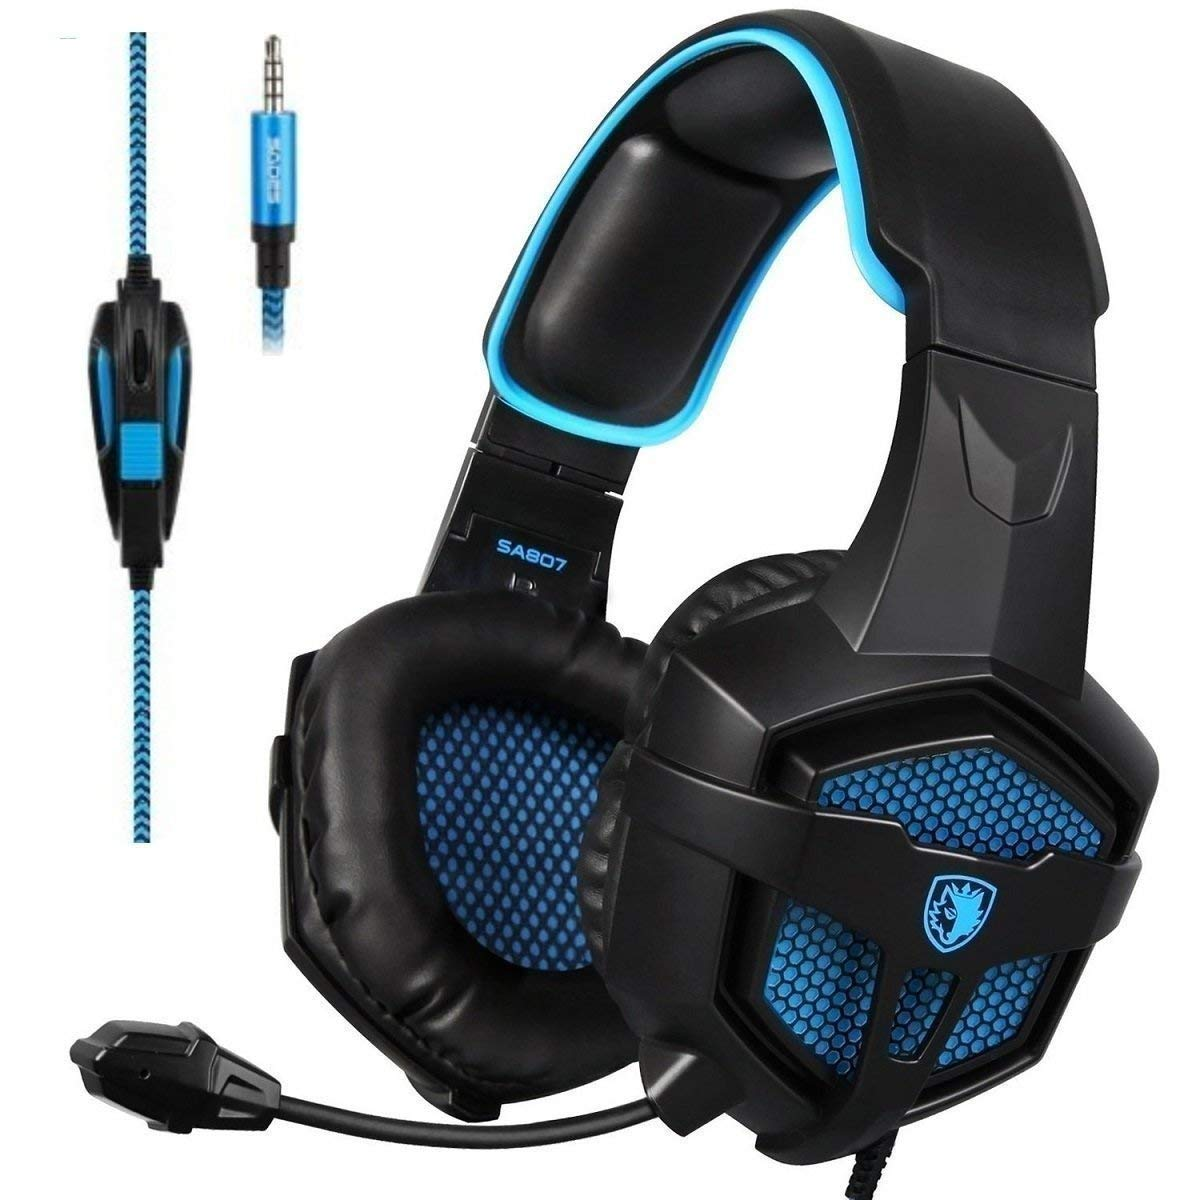 SADES SA 807 Multi-Plataforma - Auriculares Gaming para el nuevo Xbox one PS4 PC portátil Mac iPad iPod